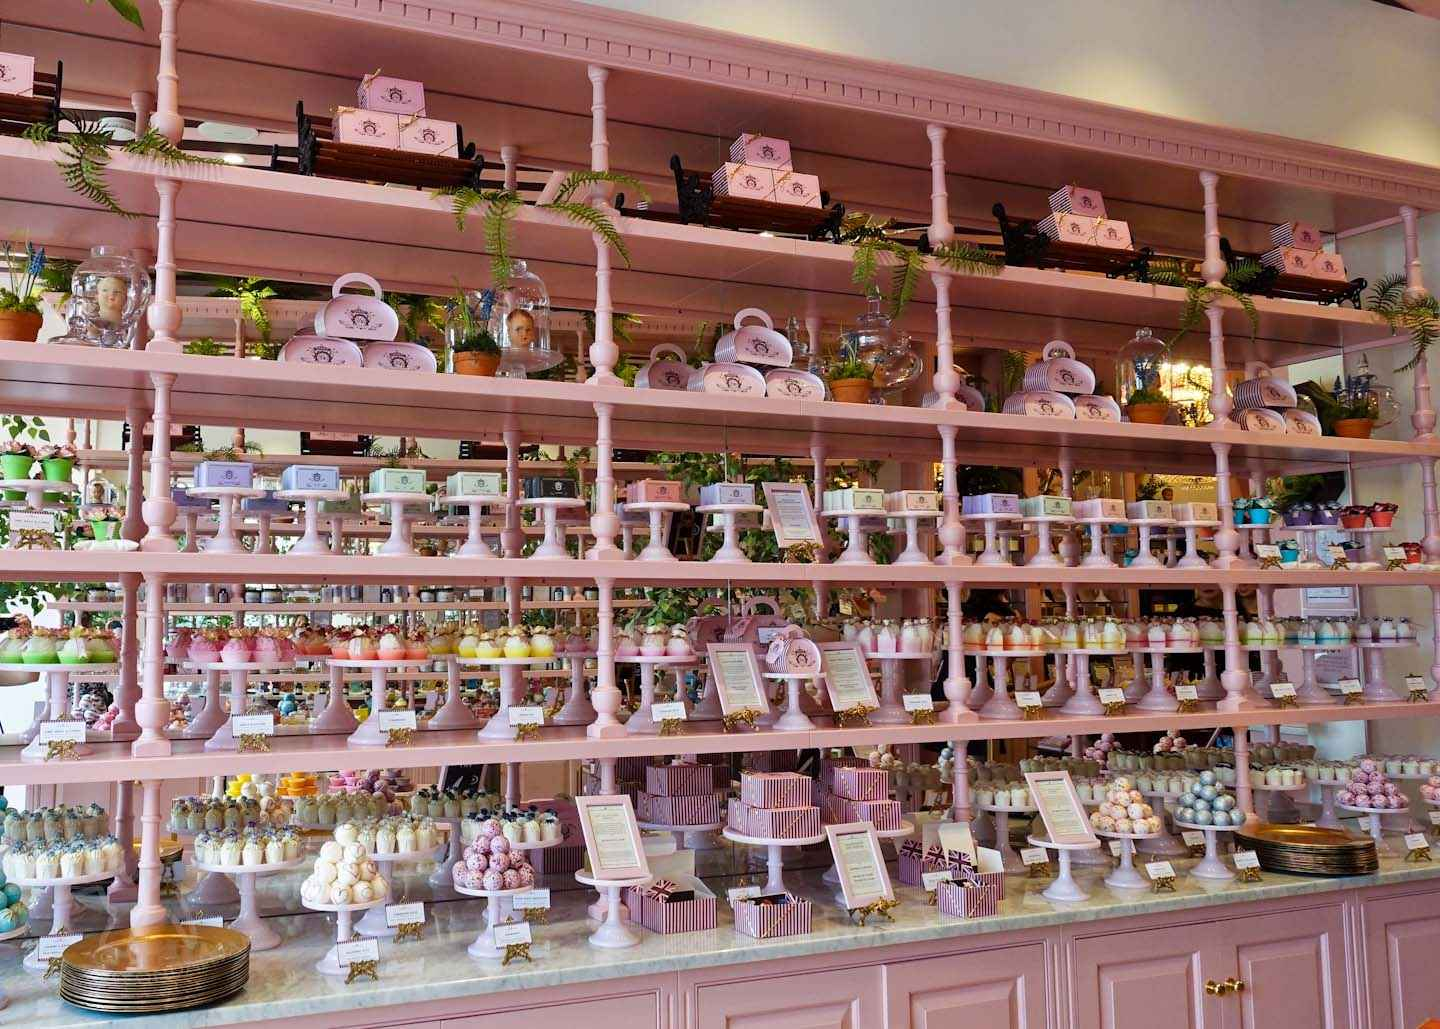 Visit Yorkshire soap online or in store for beautiful soaps and body care with fragrances skillfully blended and products for all the family. Review, photos. Visit Yorkshire Soap on Falcondale Life blog.